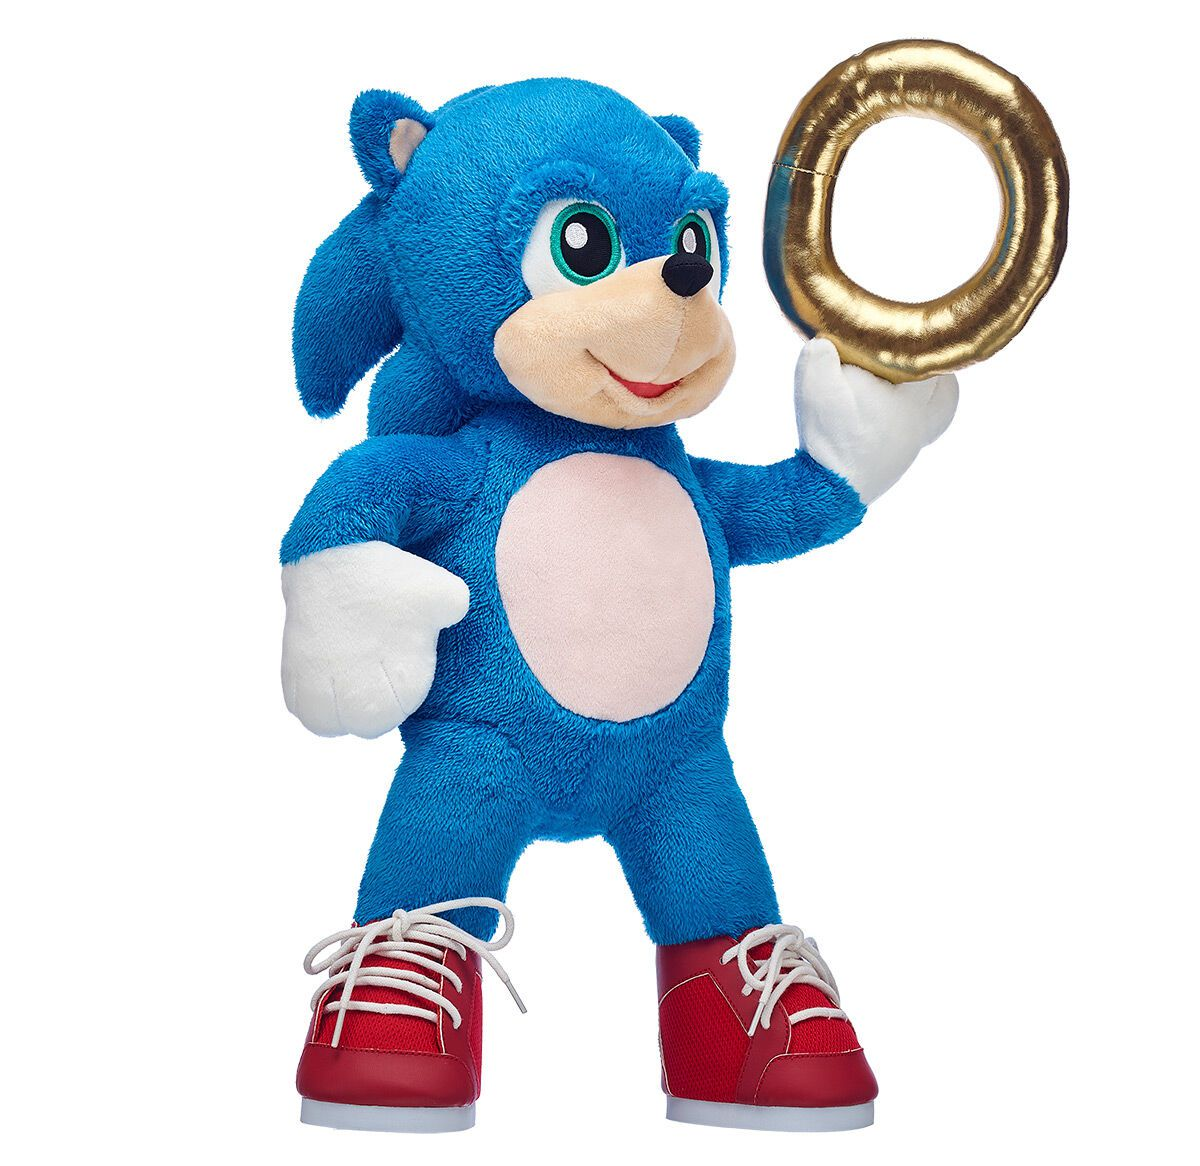 A Sonic the Hedgehog stuff animal holding a gold ring and wearing red shoes